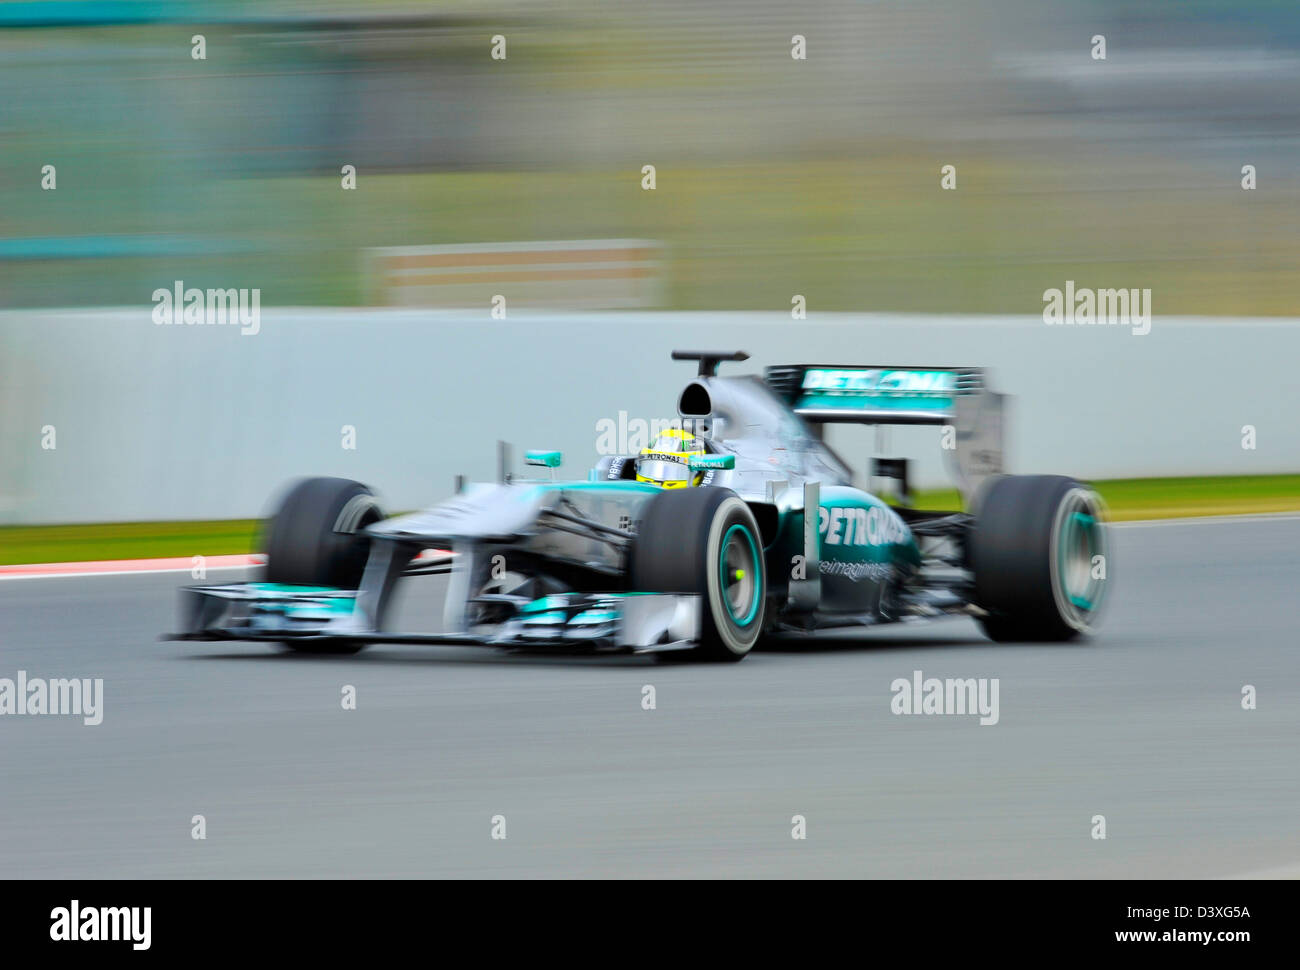 Nico Rosberg (GER), Mercedes F1 W04 during Formula One tests on Circuit de Catalunya racetrack near Barcelona, Spain - Stock Image